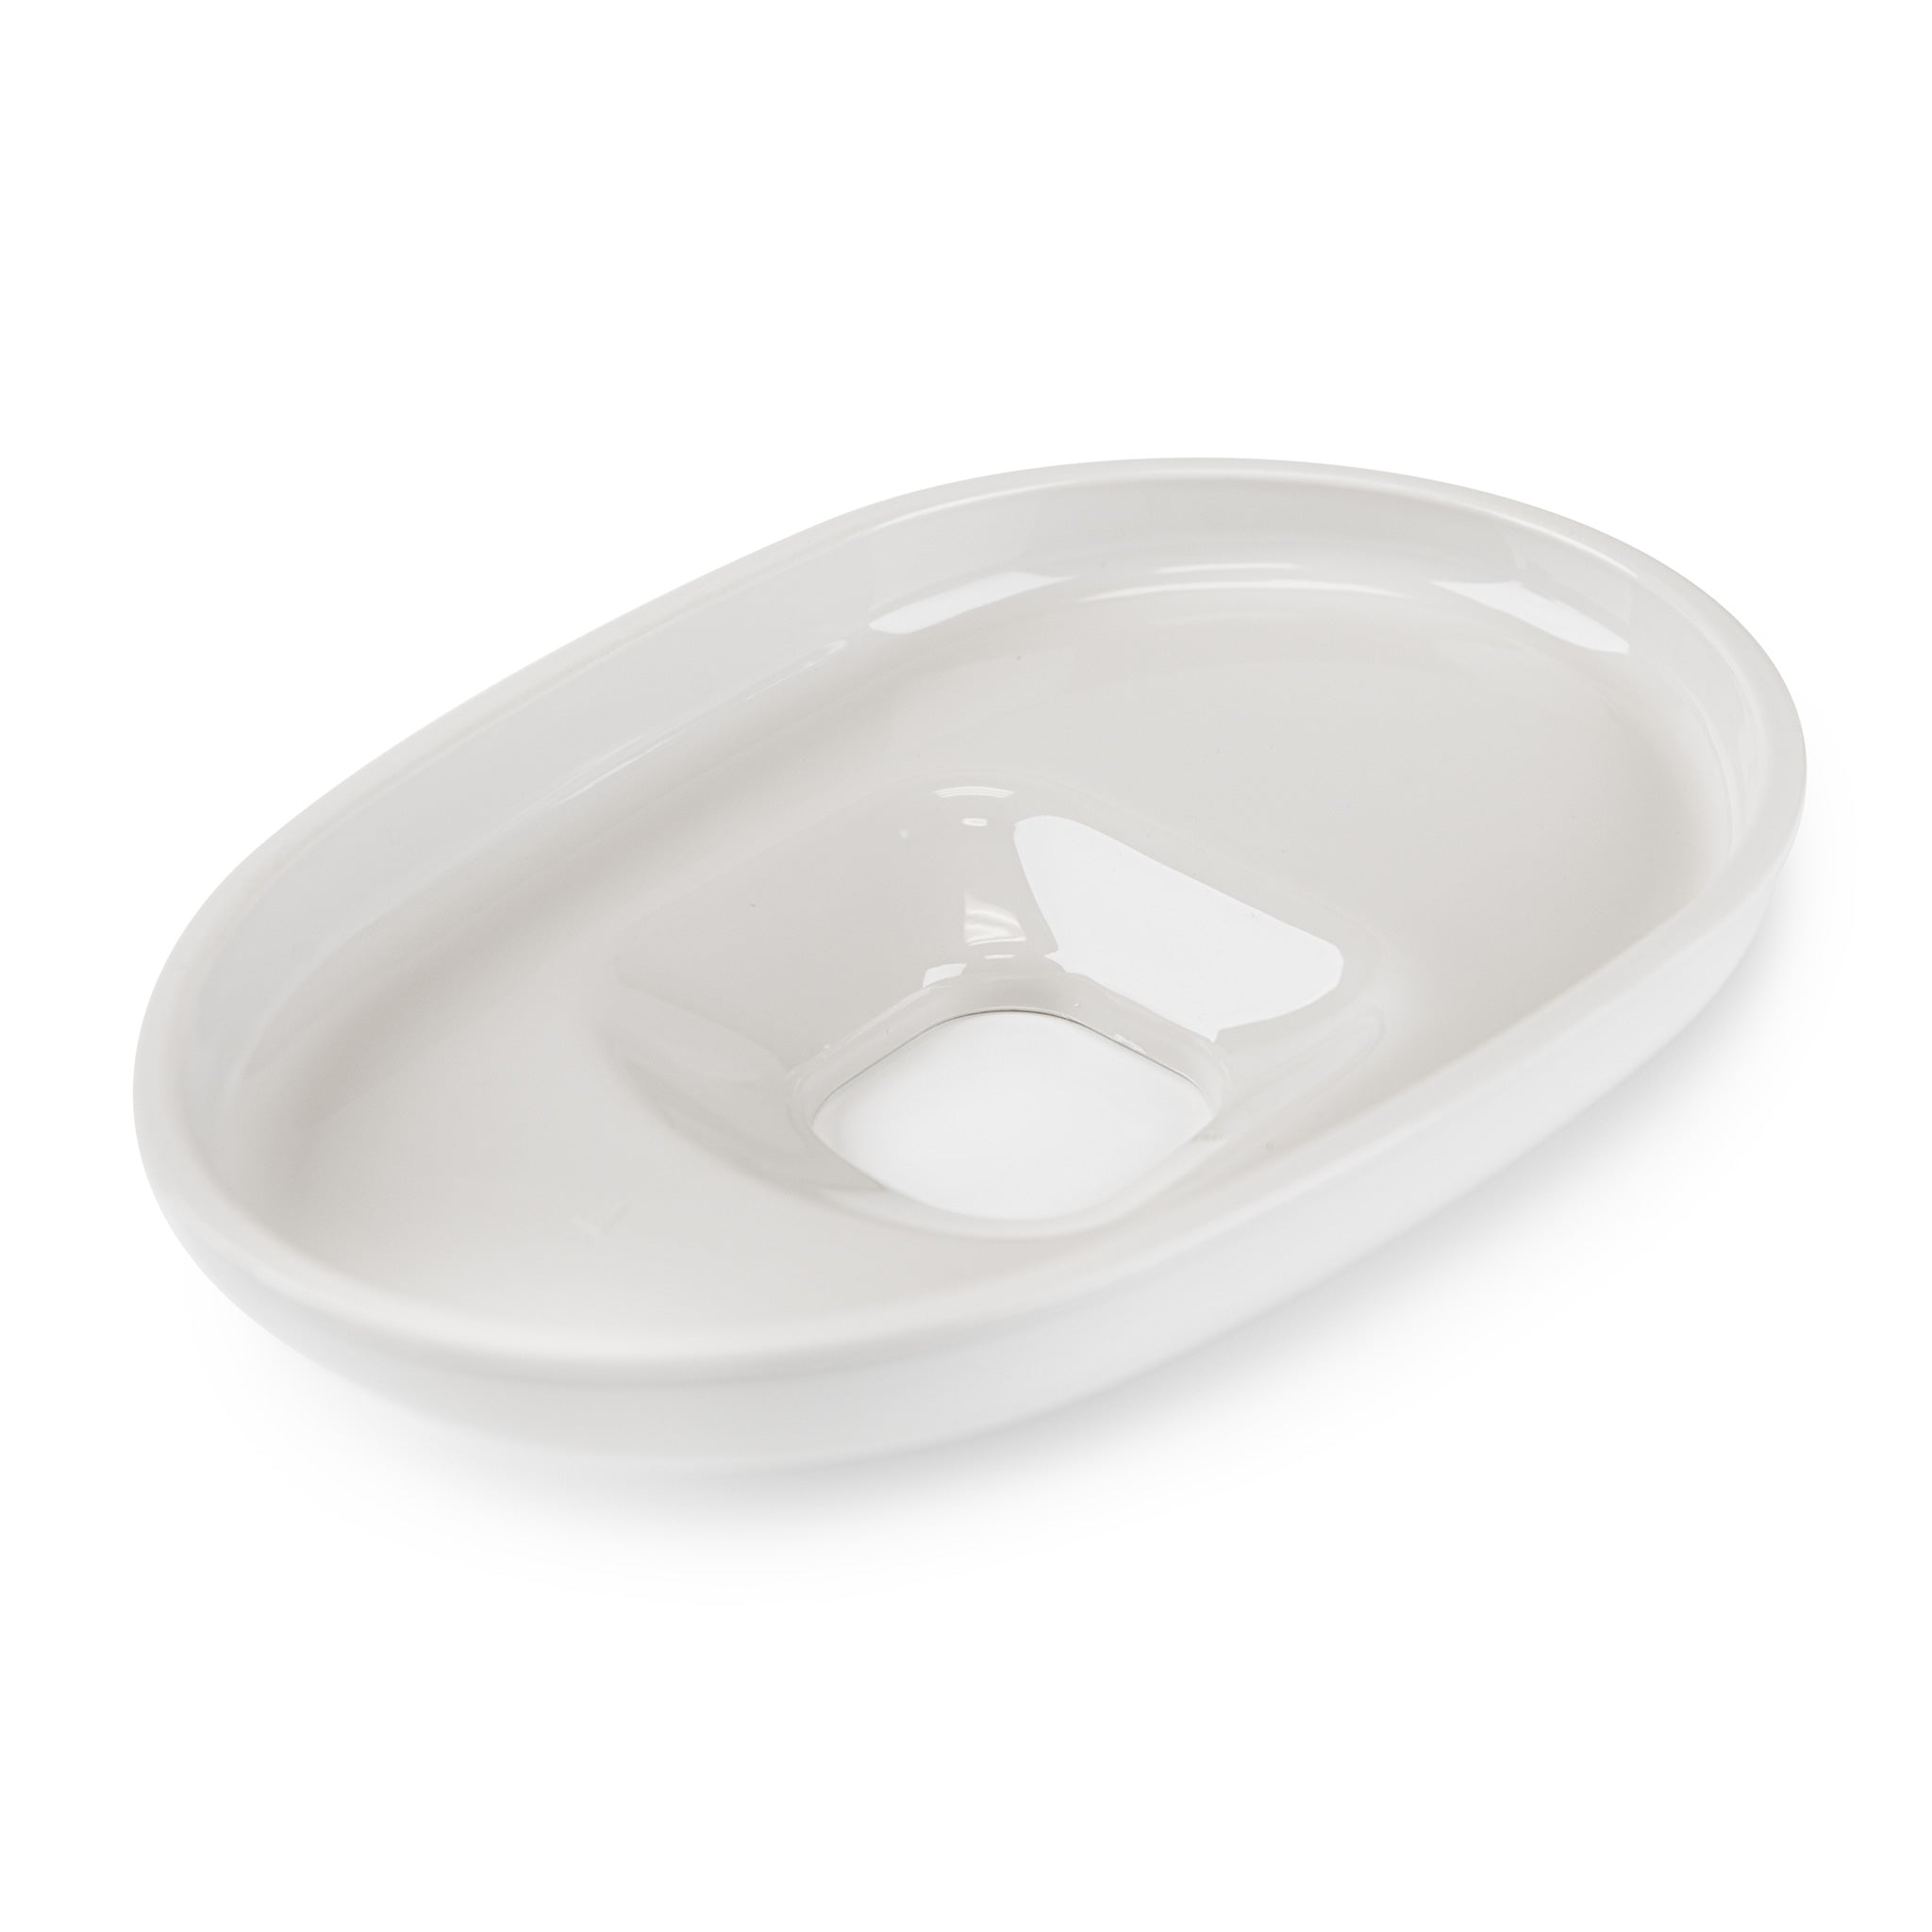 Tribest Greenstar Gold Safety Tray in White